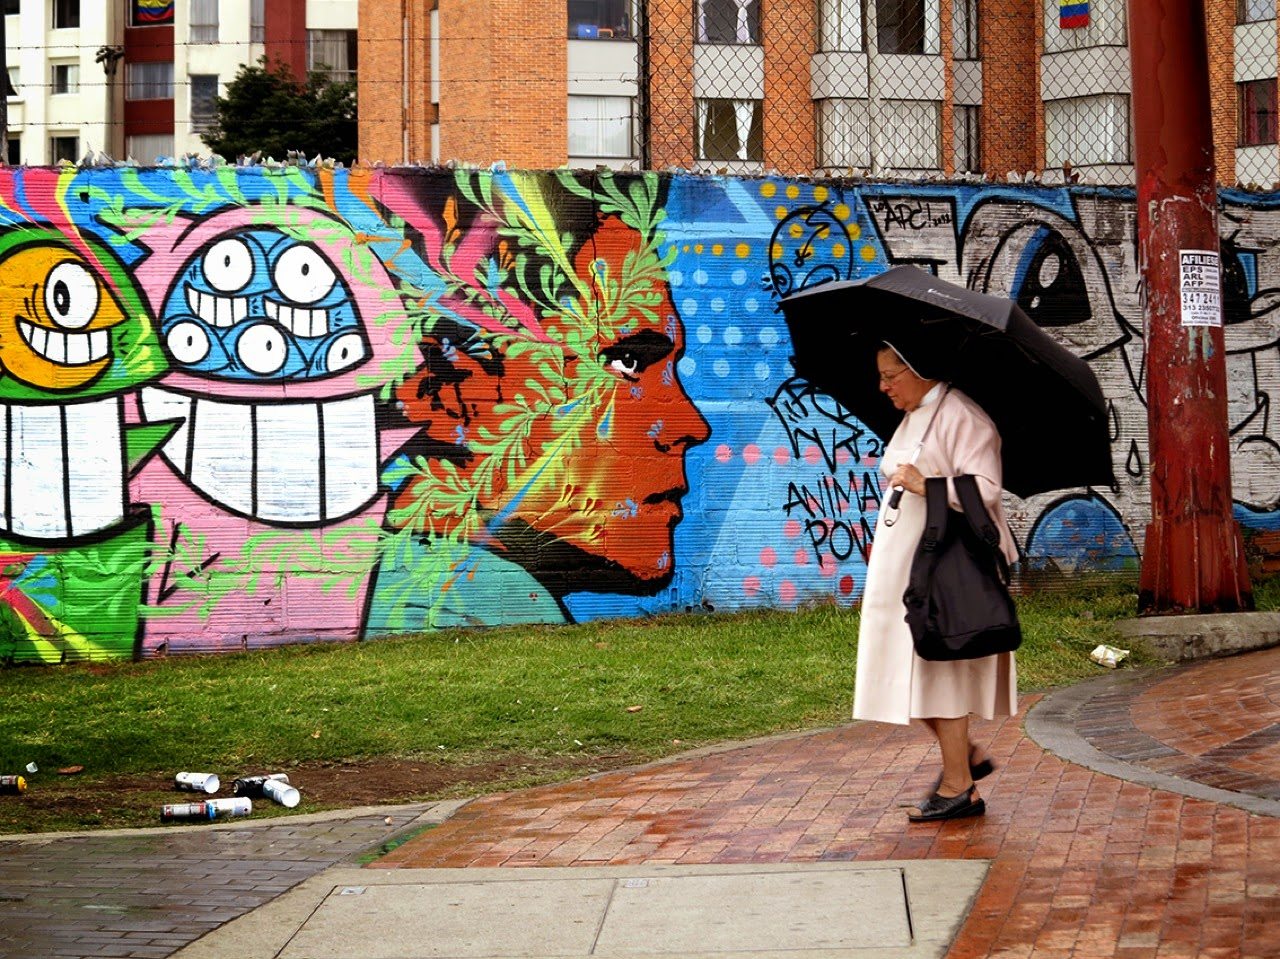 Stinkfish just sent us a series of images on his newest collaboration with PEZ which was just completed on the streets of their hometown, Bogota in Colombia.